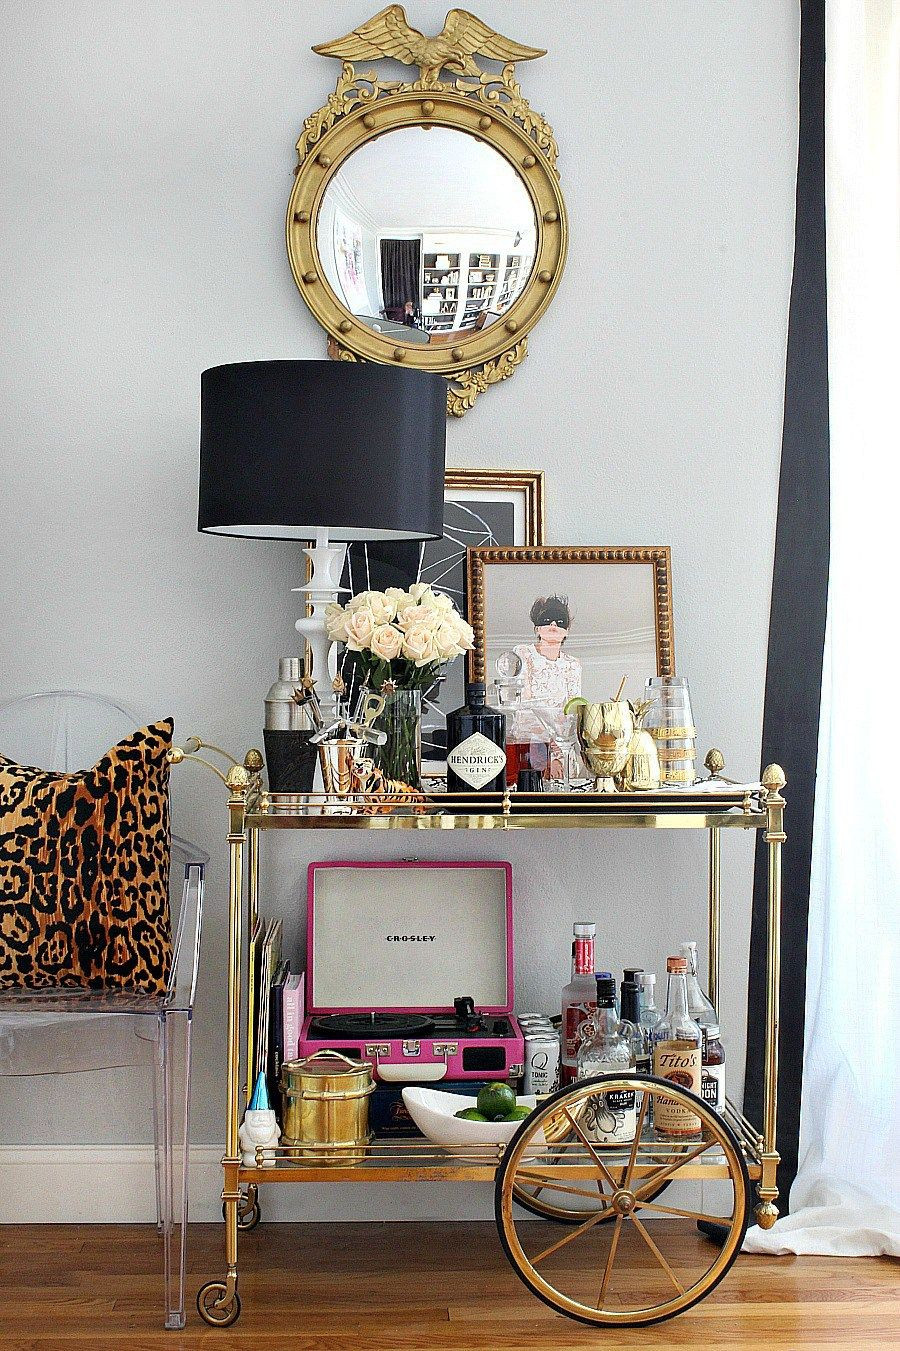 Bar Cart Styling Ideas and Tips Design of bart cart